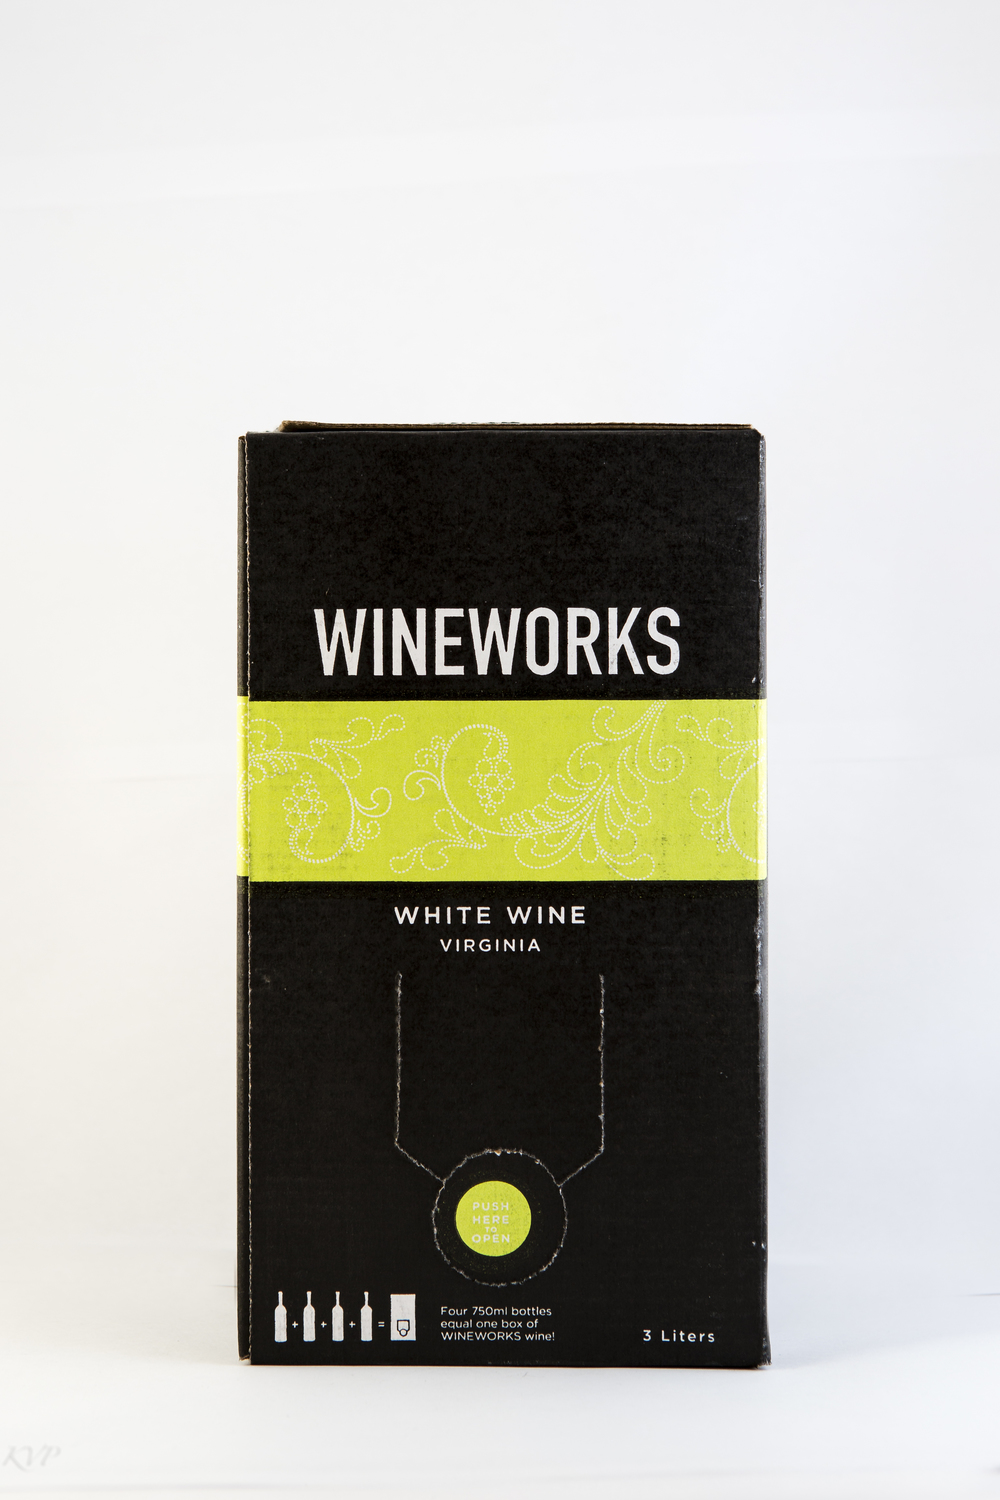 Wineworks Box White Wine  $40 This is an ever-changing blend of most of the white varieties one would encounter in Virginia such as: Petit Manseng, Viognier, Chardonnay, Vidal, Traminette, etc, etc. The style is crisp and fruity, highly versatile, and loaded with charm. Ask about our current blend.